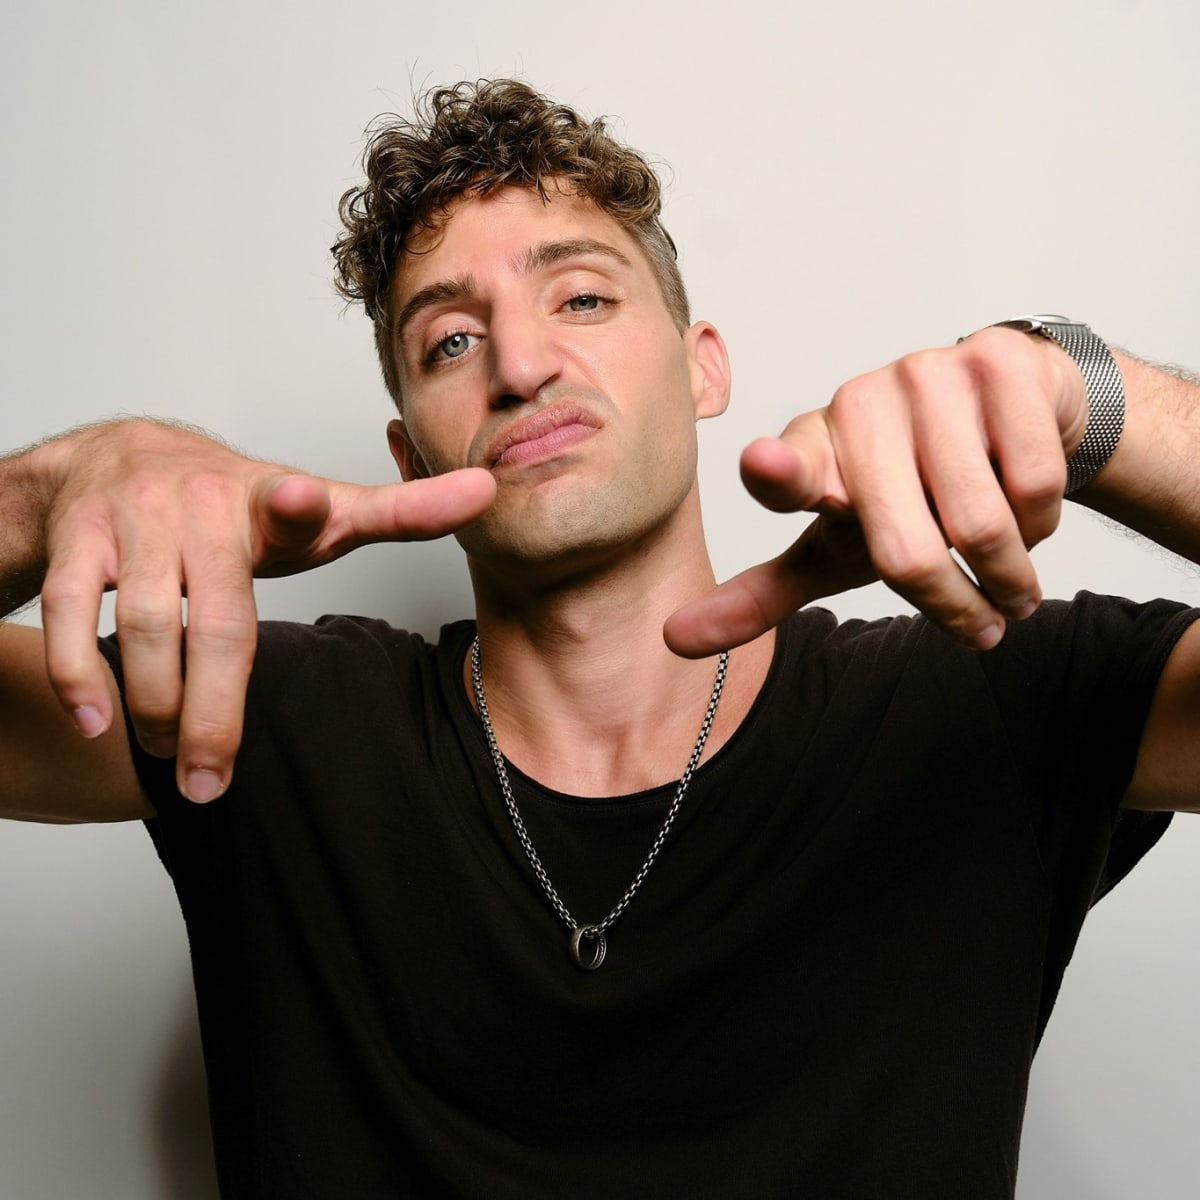 """The Most Emotional Song I've Ever Written"": Listen to a Preview of Herobust's Upcoming Track ""Remember"" - EDM.com"